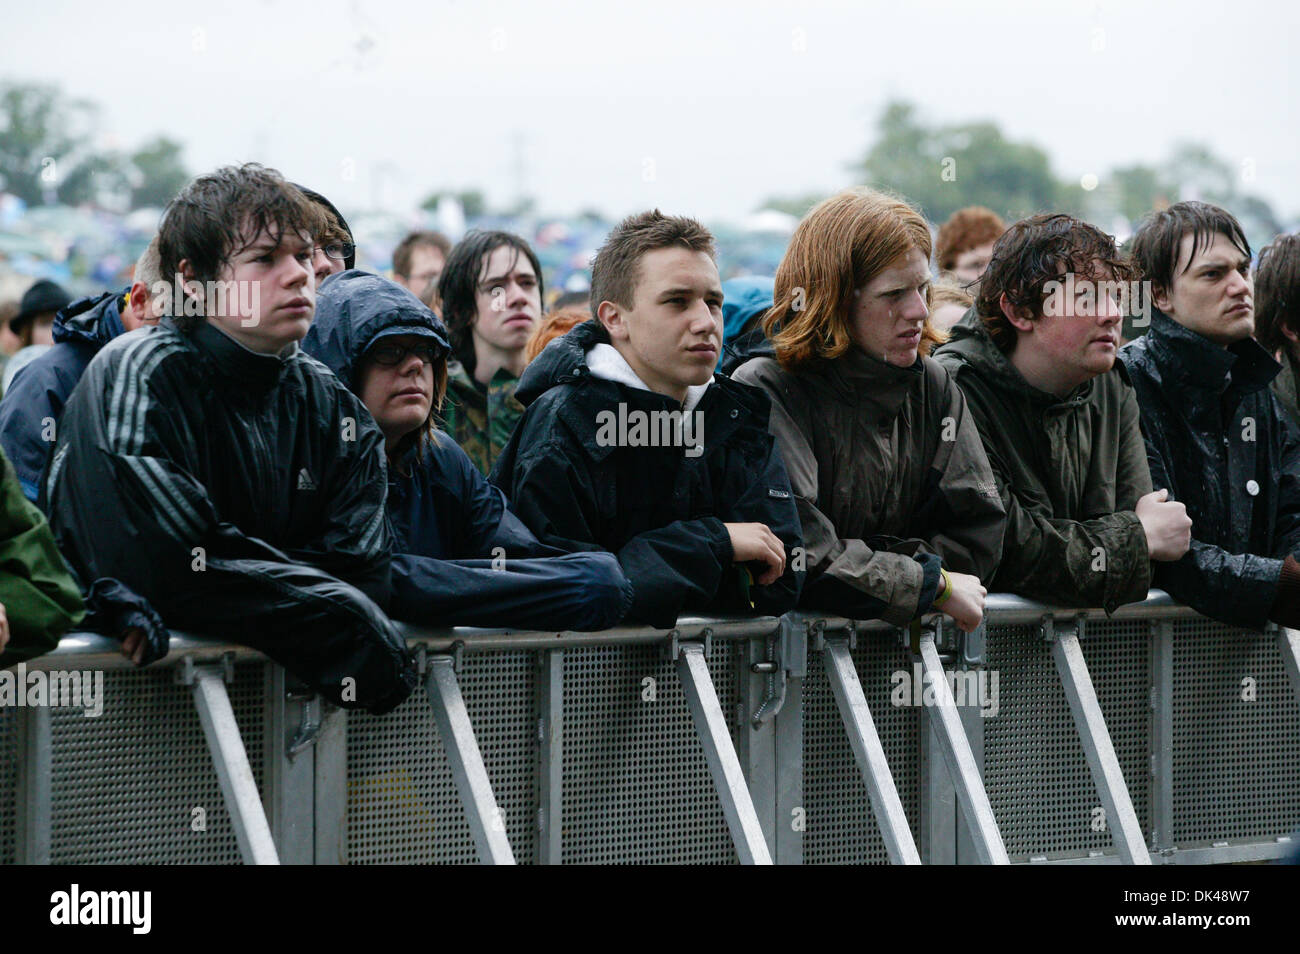 audience watching the duke spirit band performing at the glastonbury festival 2004